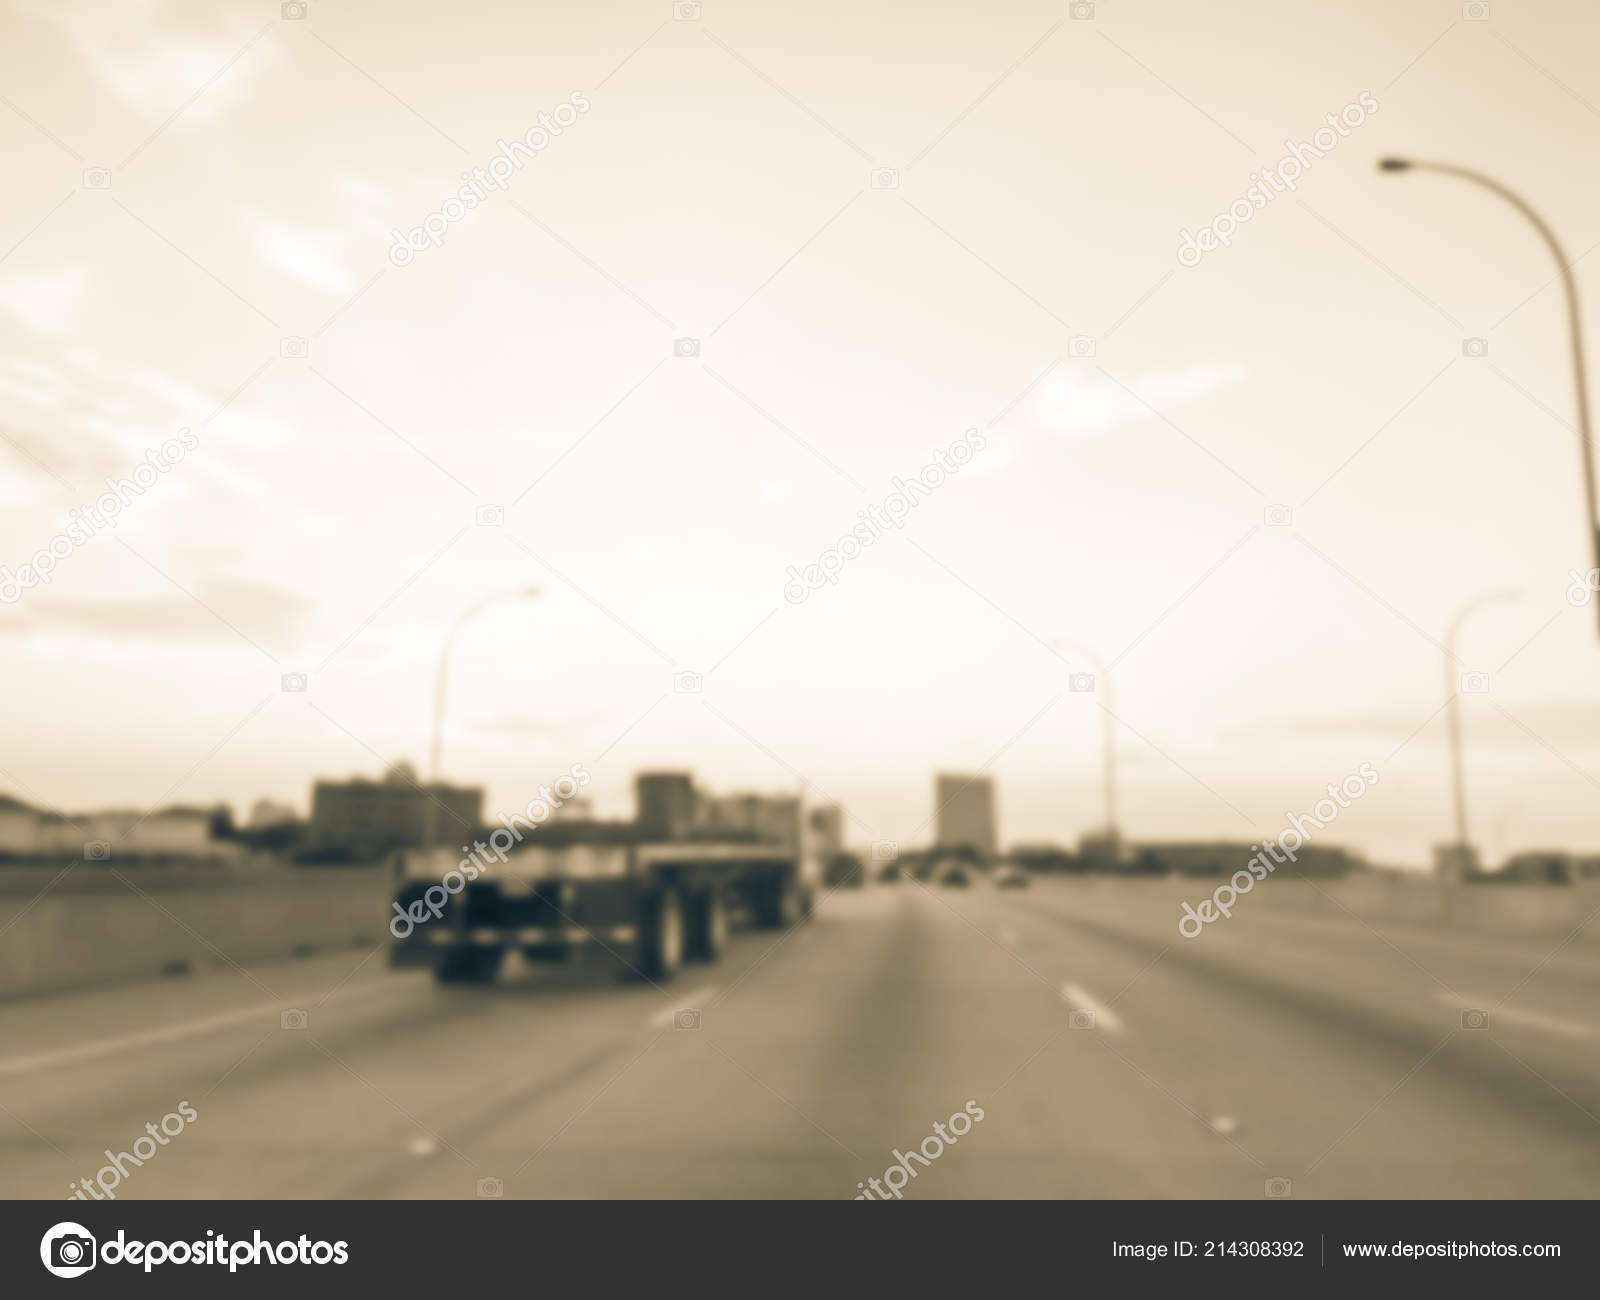 Motion Blurred Interstate 635 635 Highway Traffic Long Vehicles